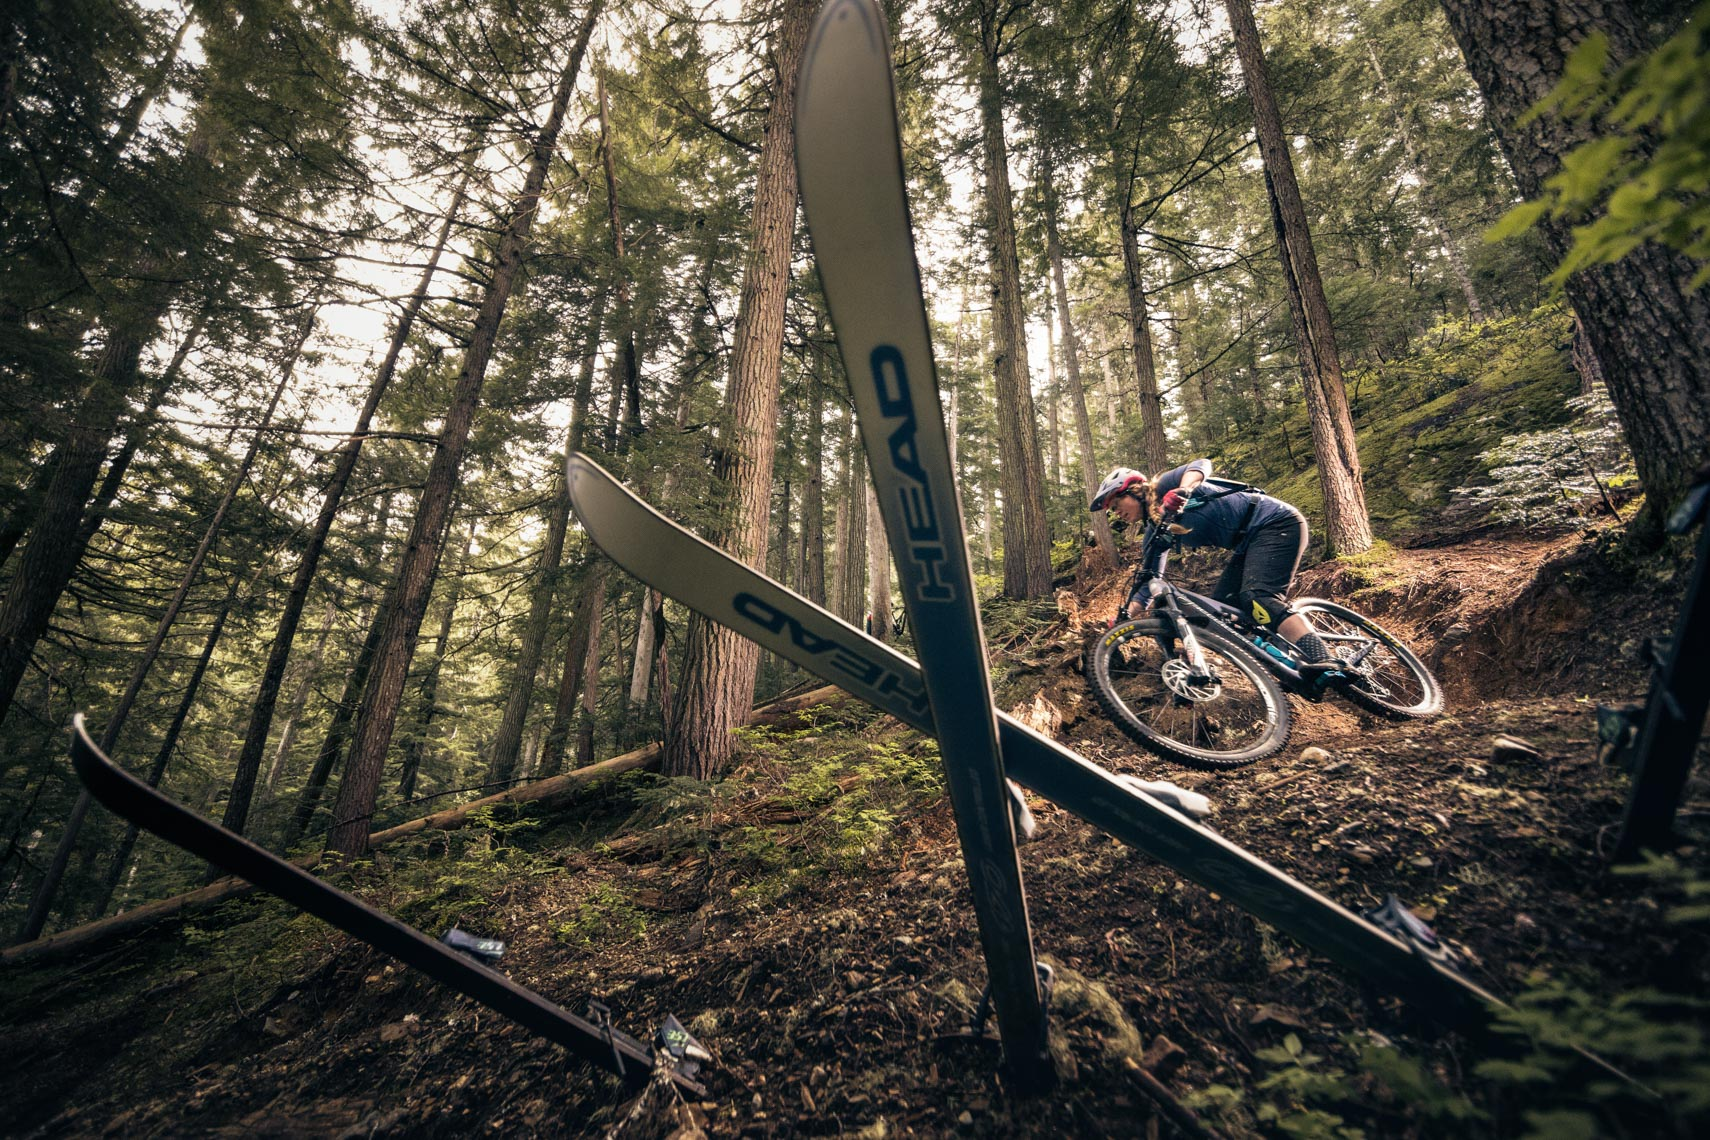 Female mountain bike athlete Sarah Leishman rides past skis